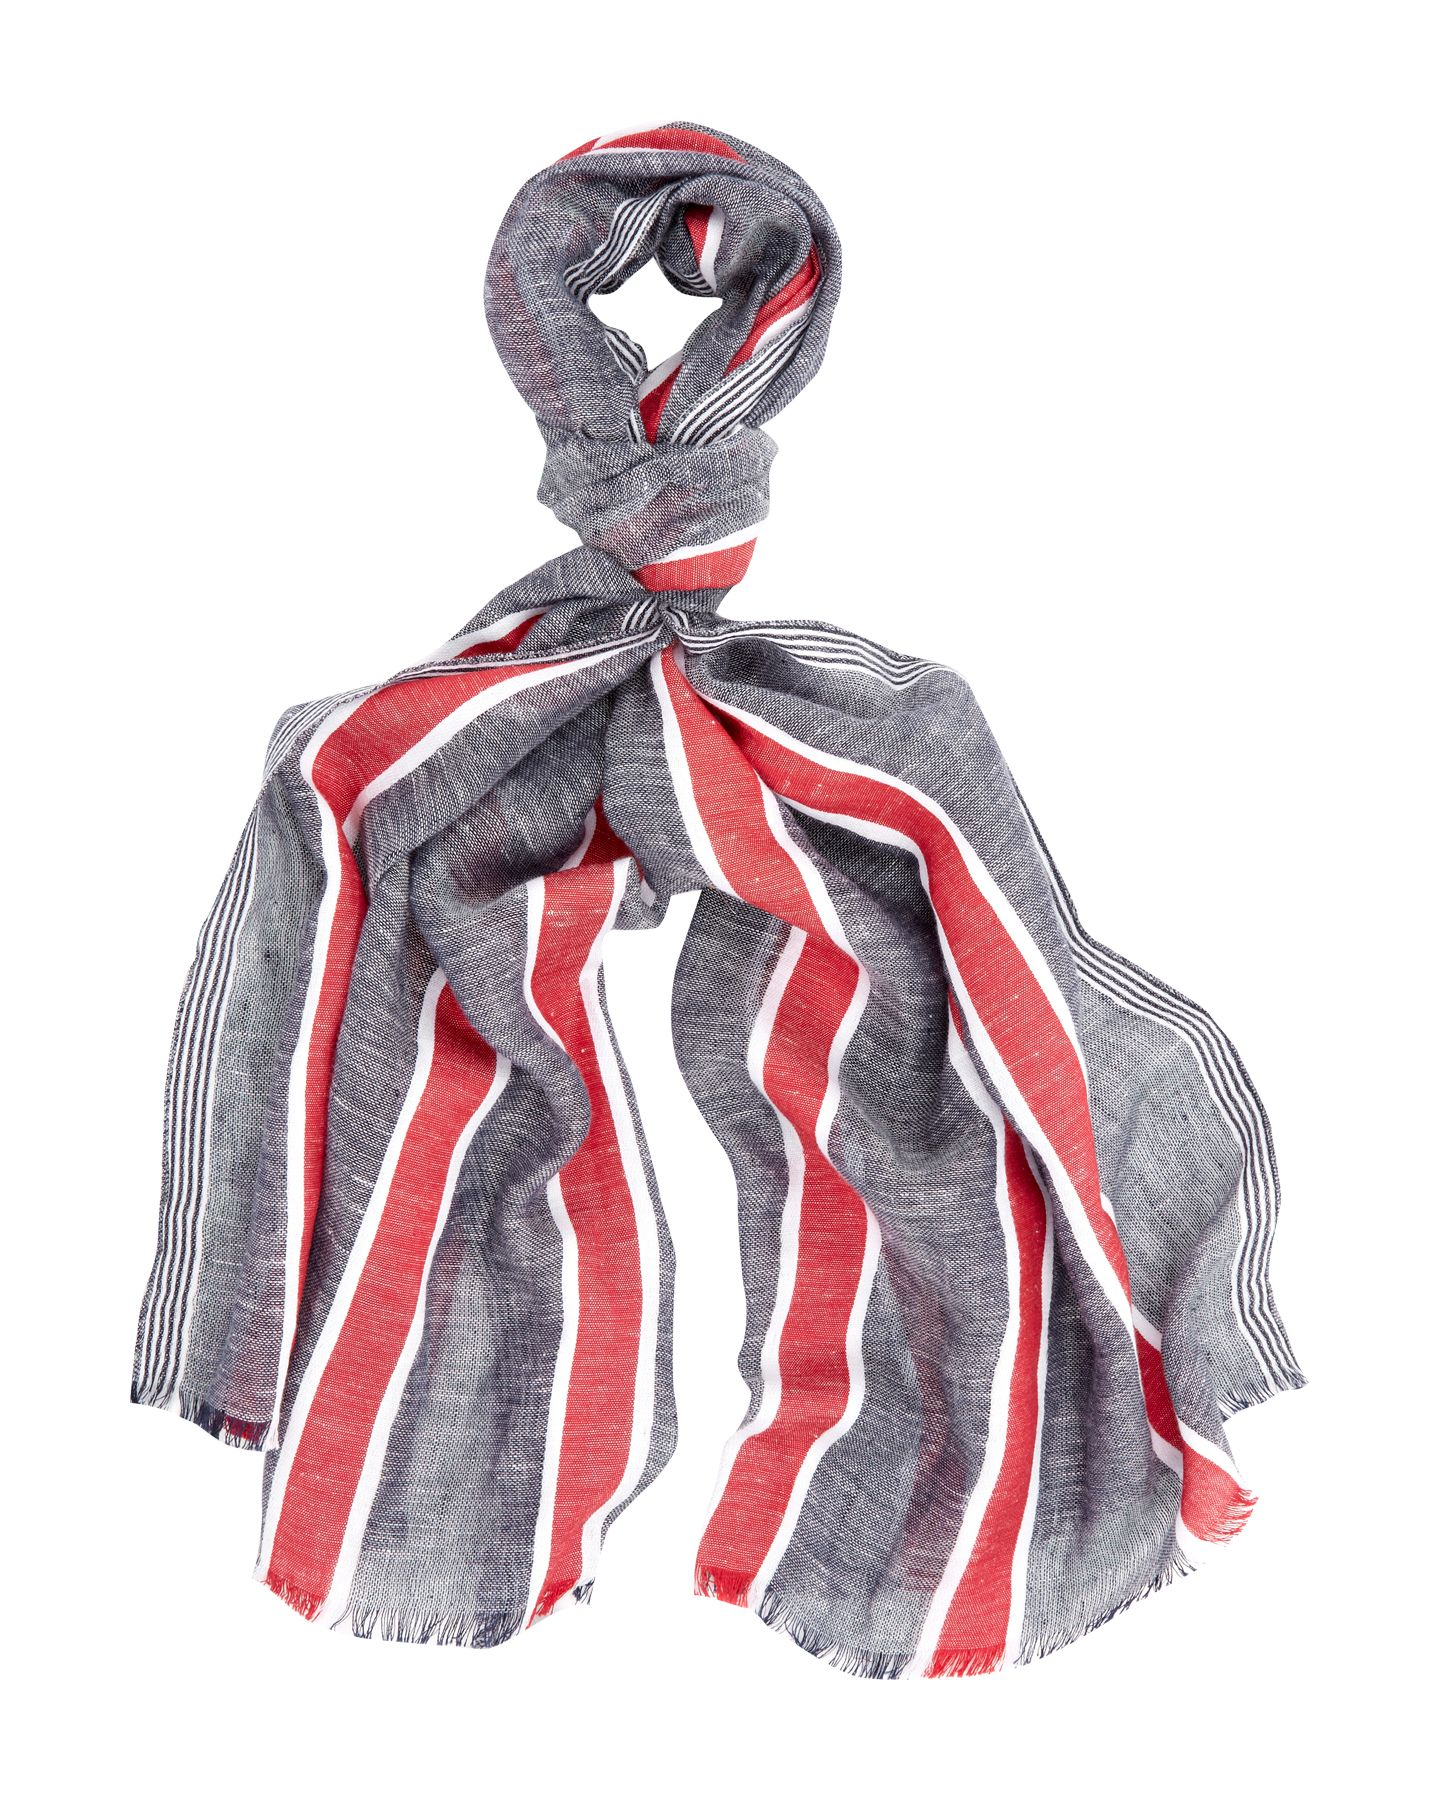 Nautical striped scarf